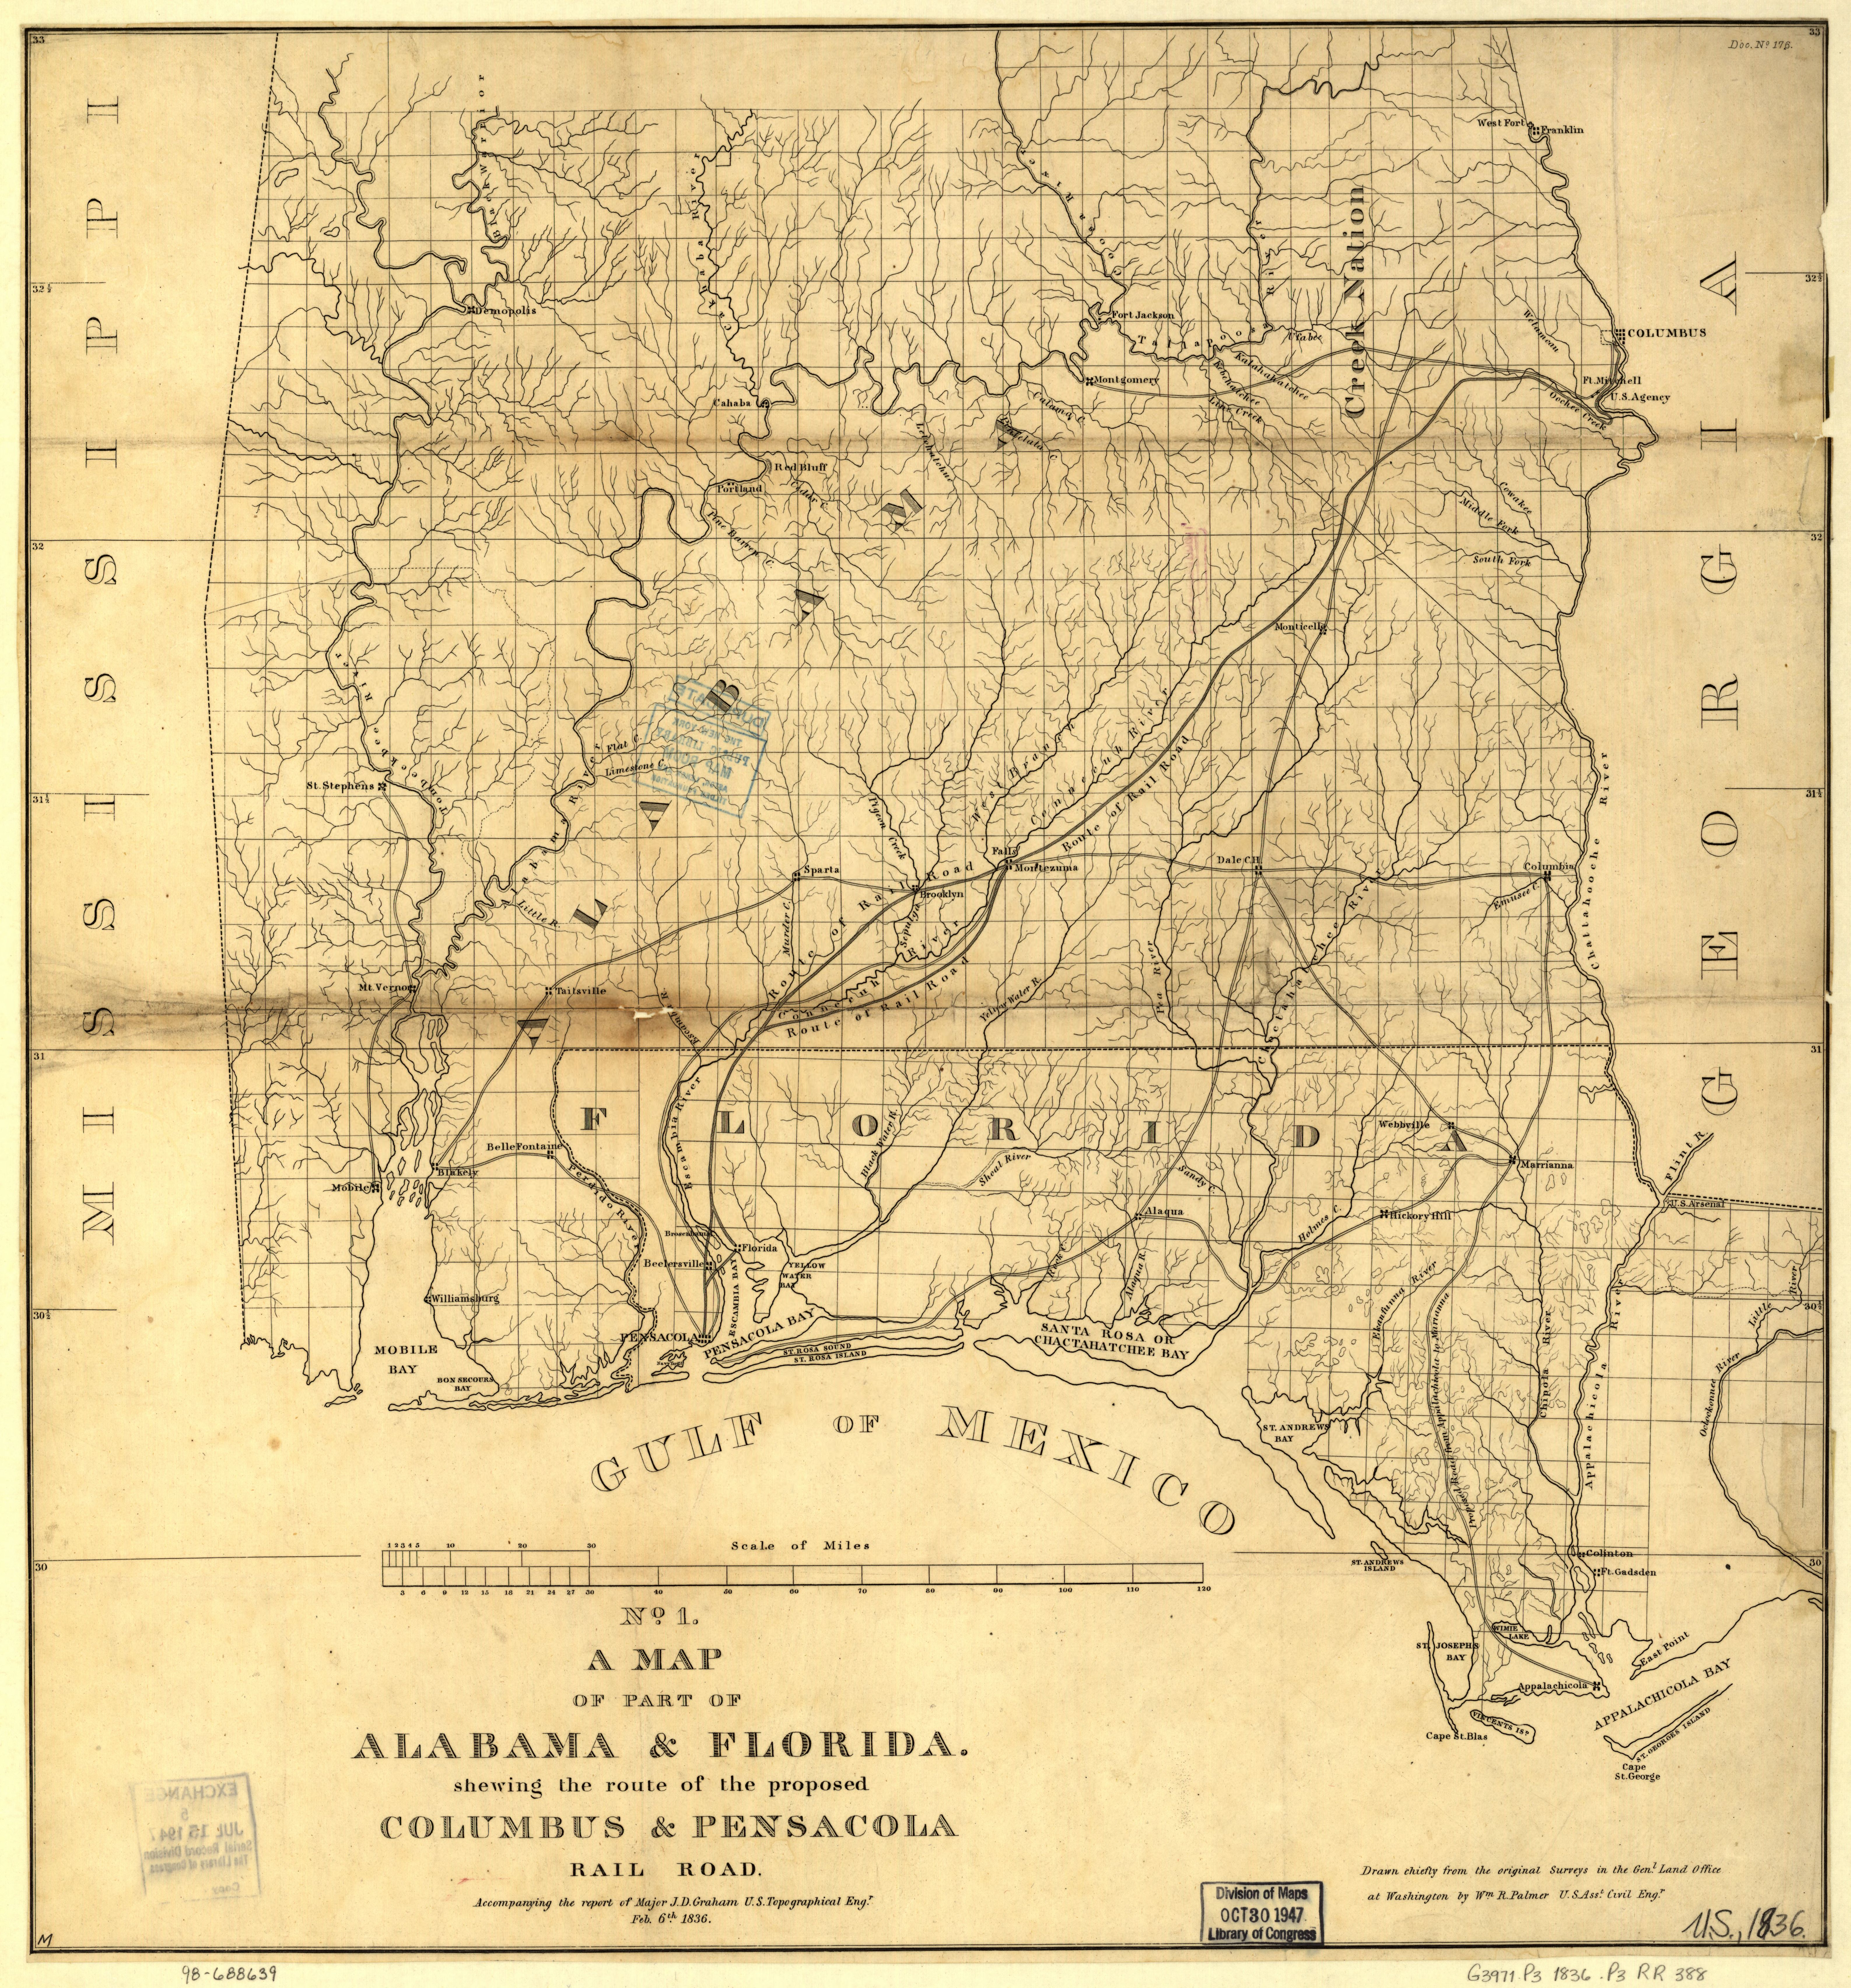 File:A map of part of Alabama & Florida, showing the route of the ...